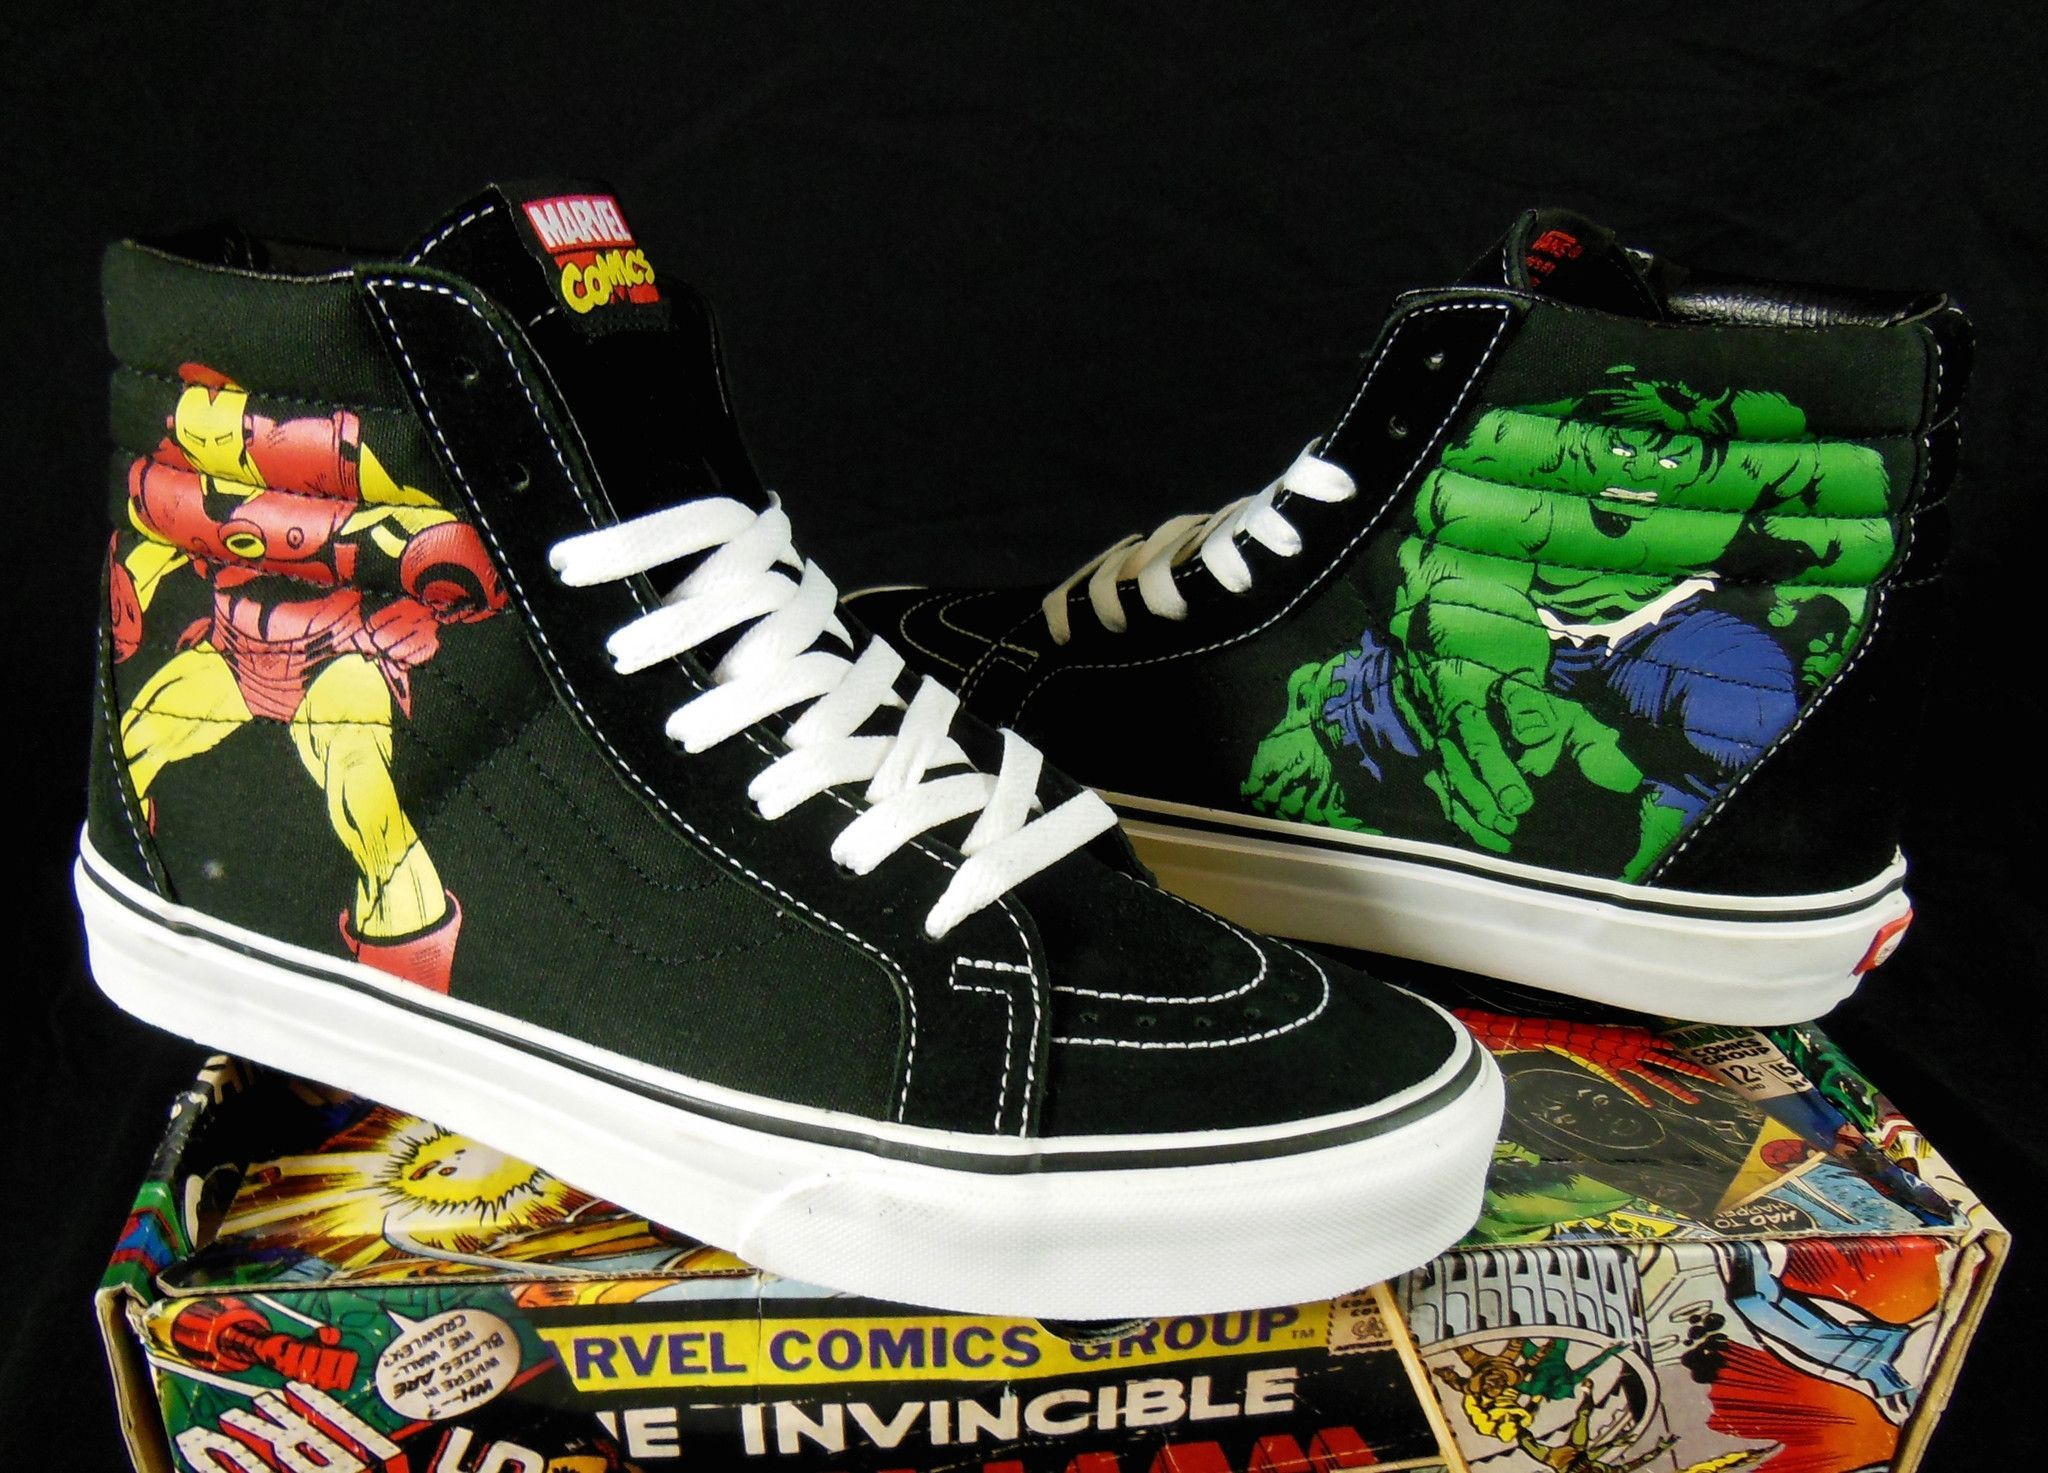 e19d4be56d5 Vans Avengers Marvel Comics Hi-Top Kicks   Sneakers